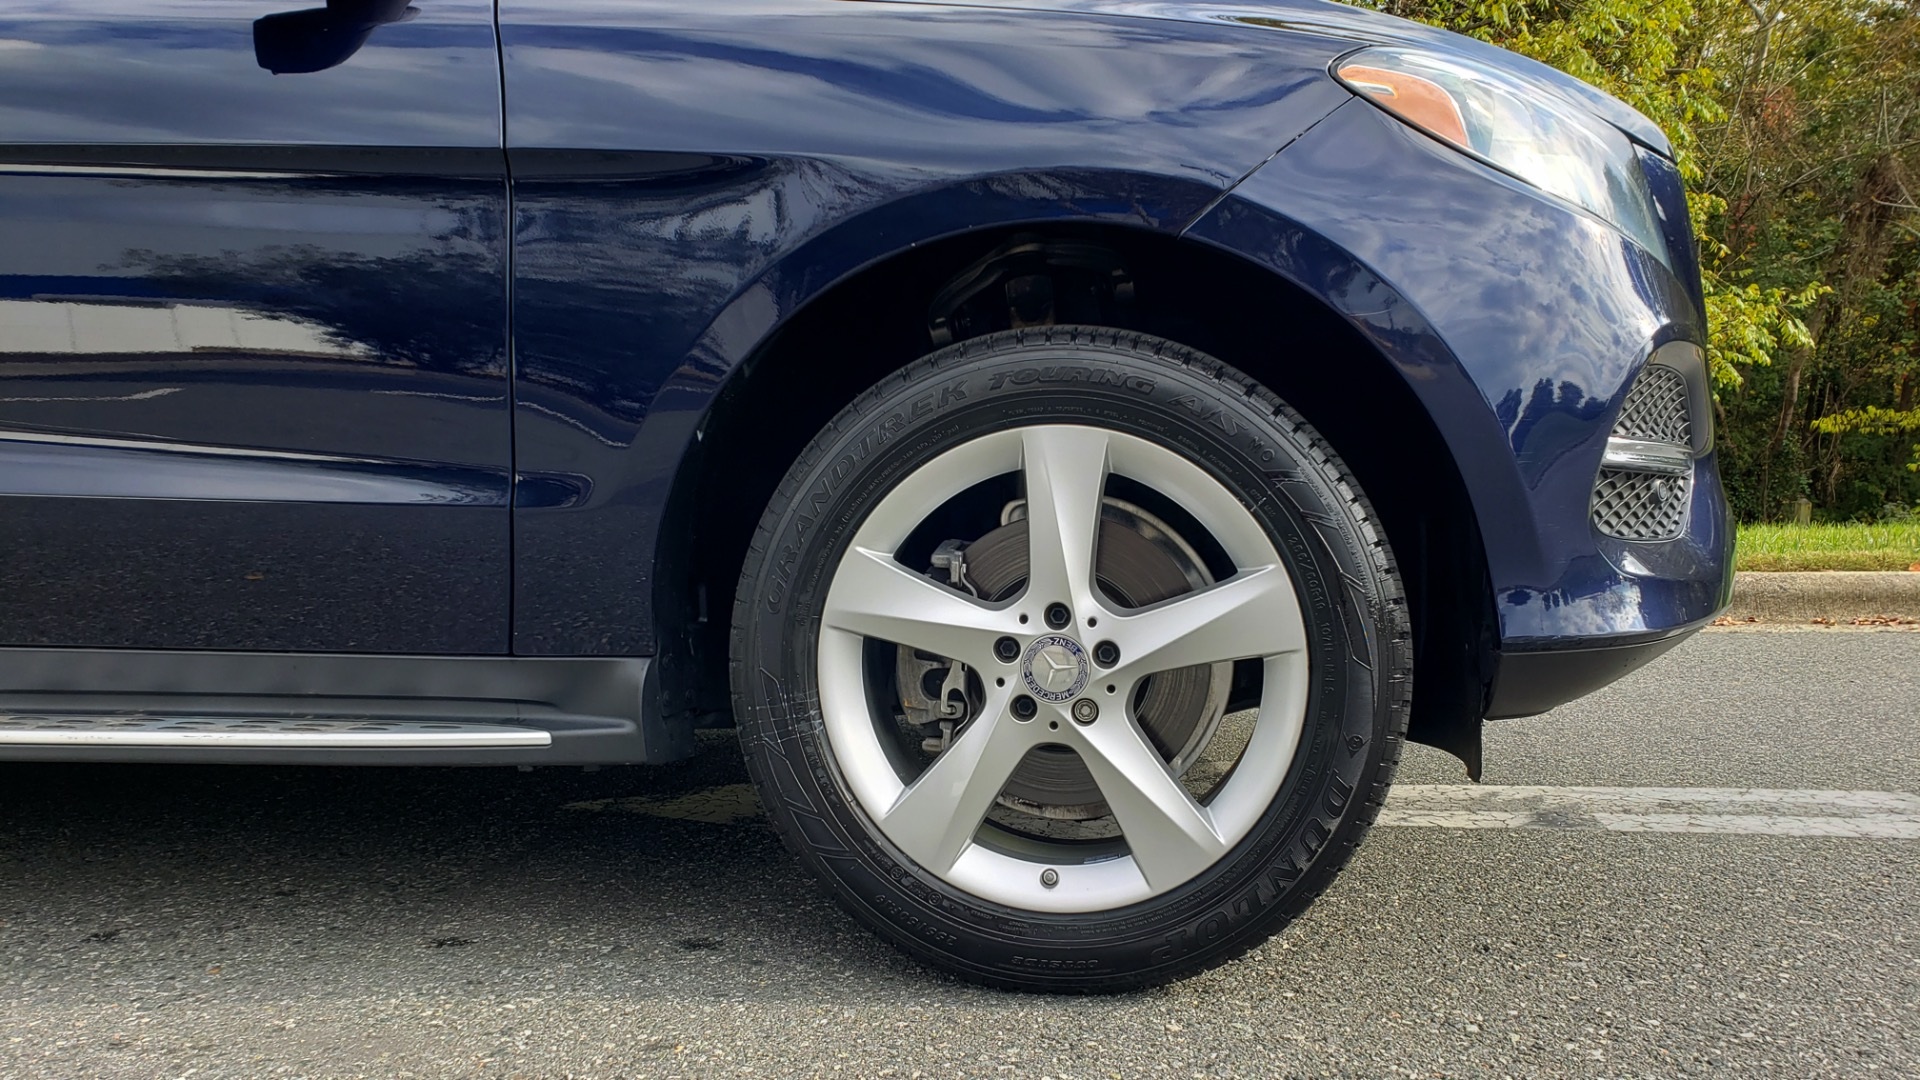 Used 2016 Mercedes-Benz GLE 350 PREMIUM / NAV / SUNROOF / BACK-UP CAMERA / LANE TRACKING for sale Sold at Formula Imports in Charlotte NC 28227 12